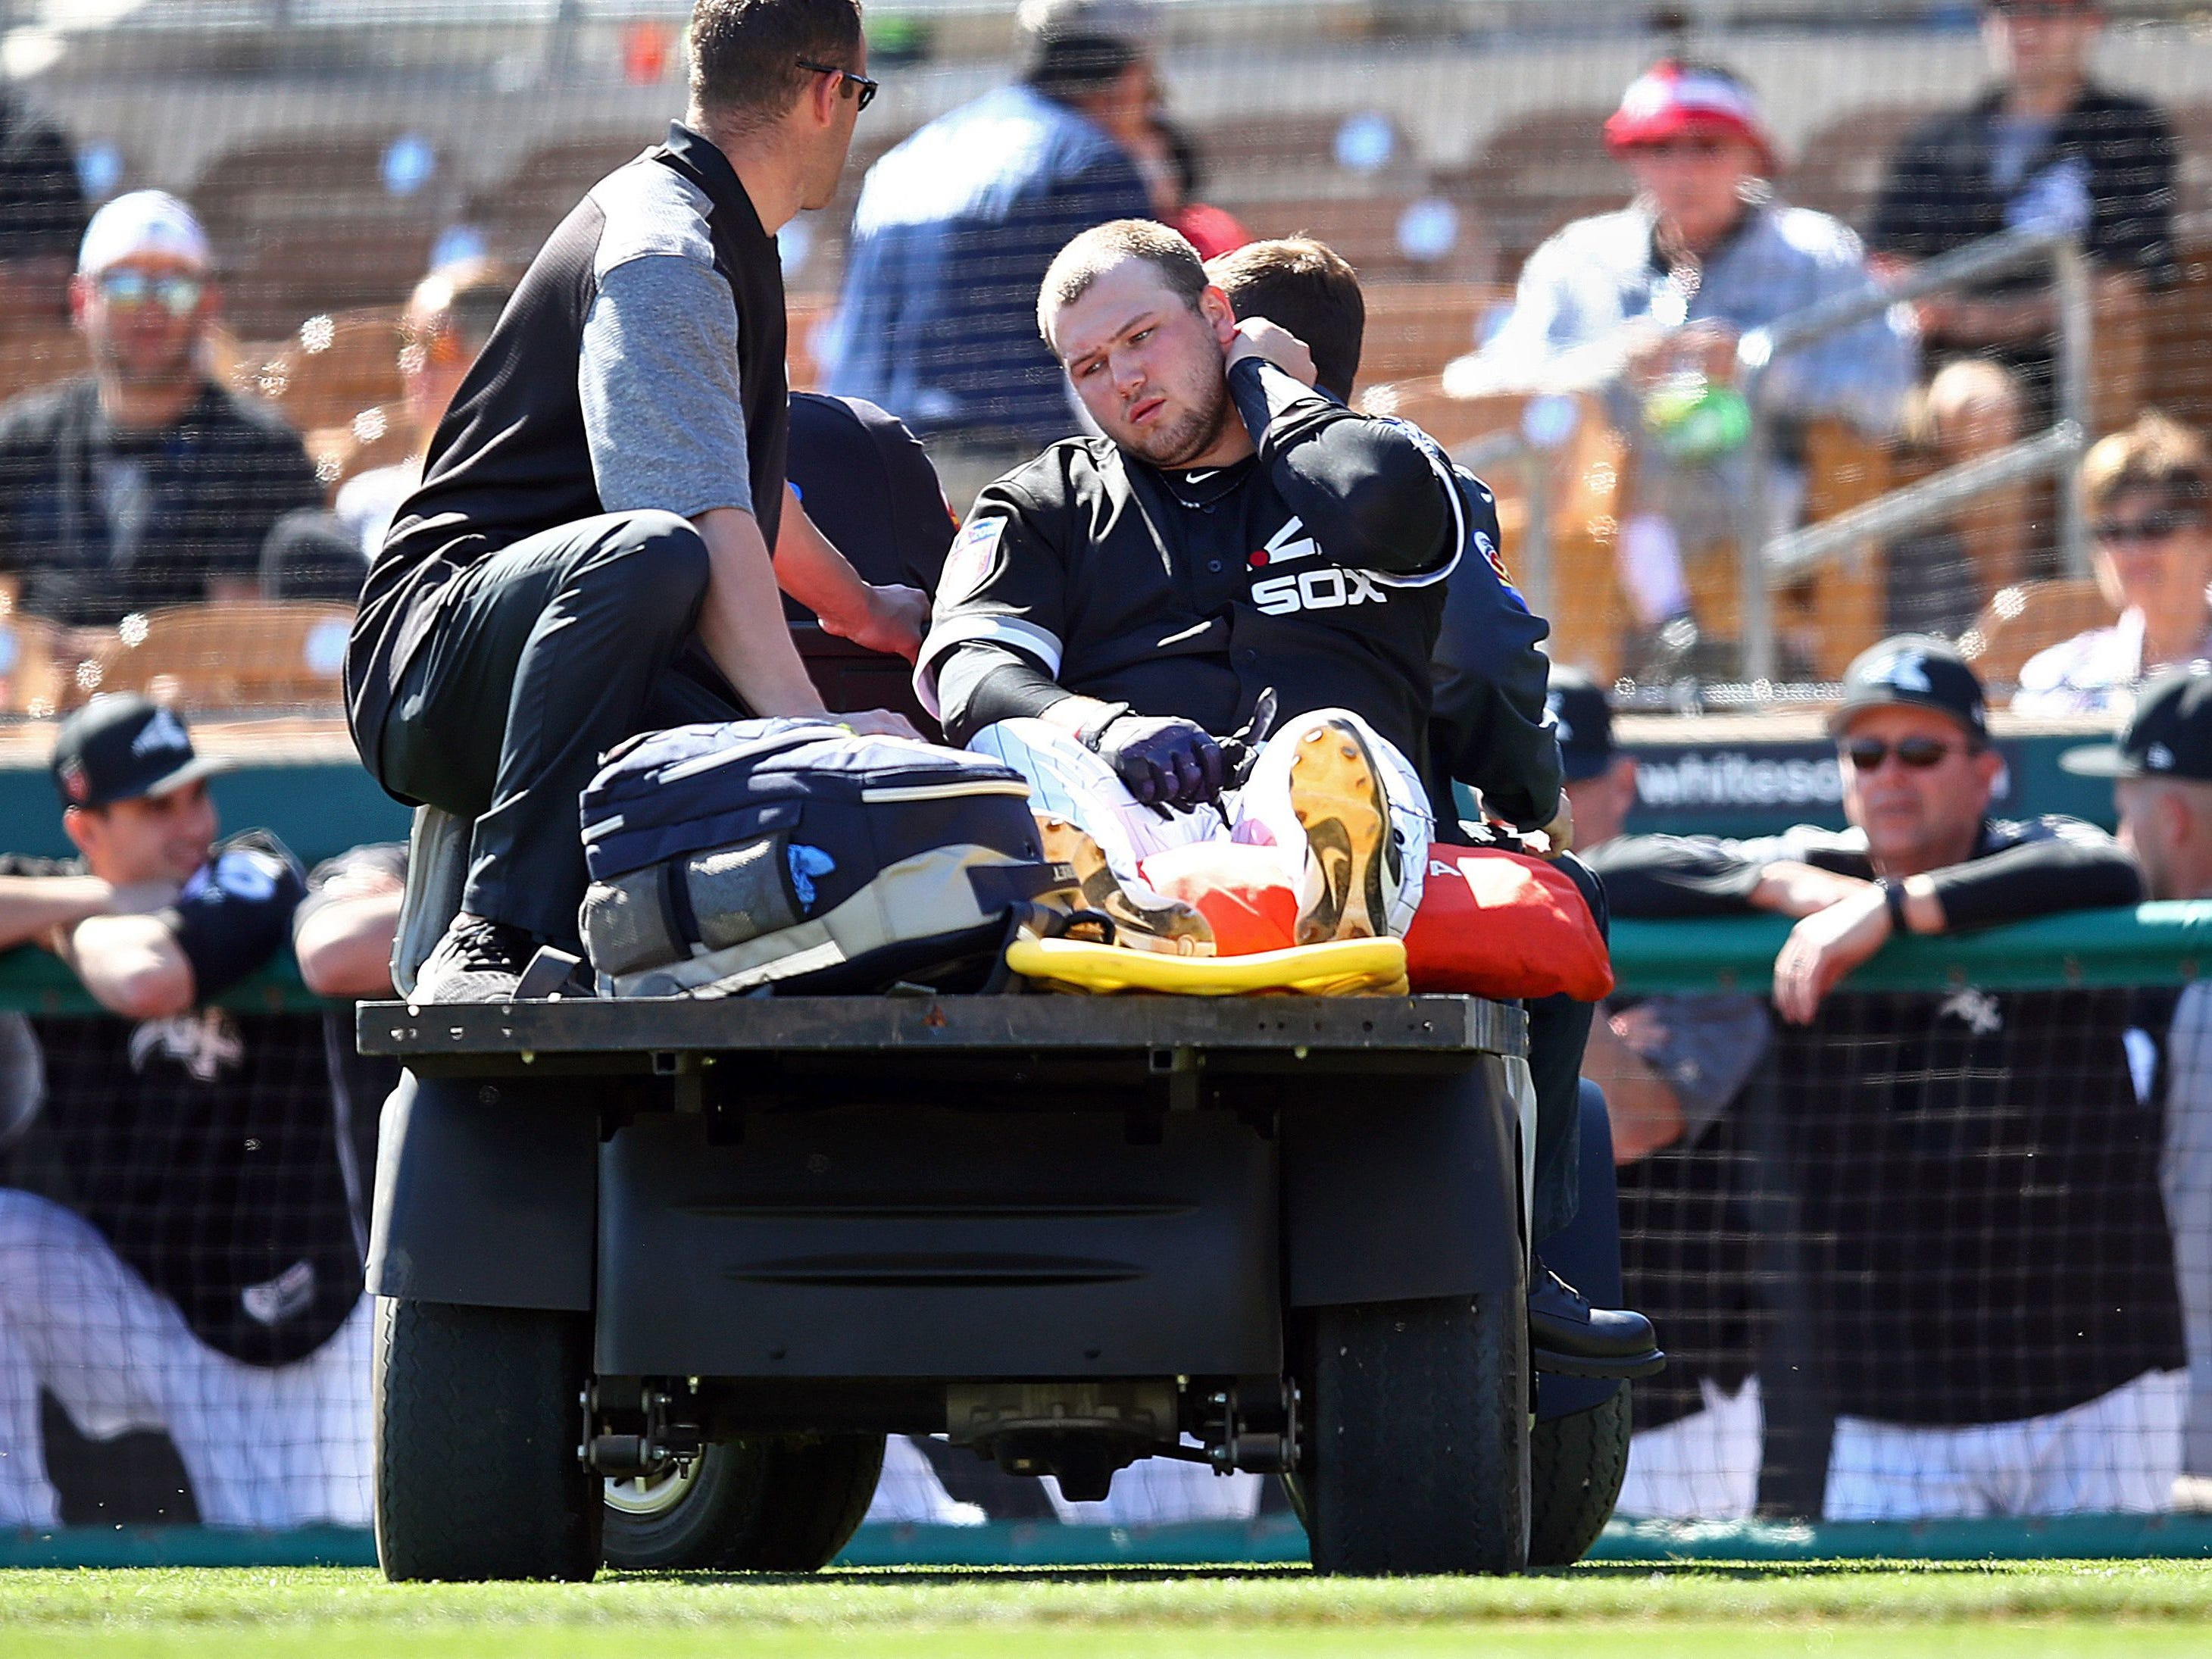 Feb. 27: Chicago White Sox third baseman and MSU alum Jake Burger ruptures his Achilles during a spring training baseball game against the Oakland Athletics on Monday in Glendale, Ariz.